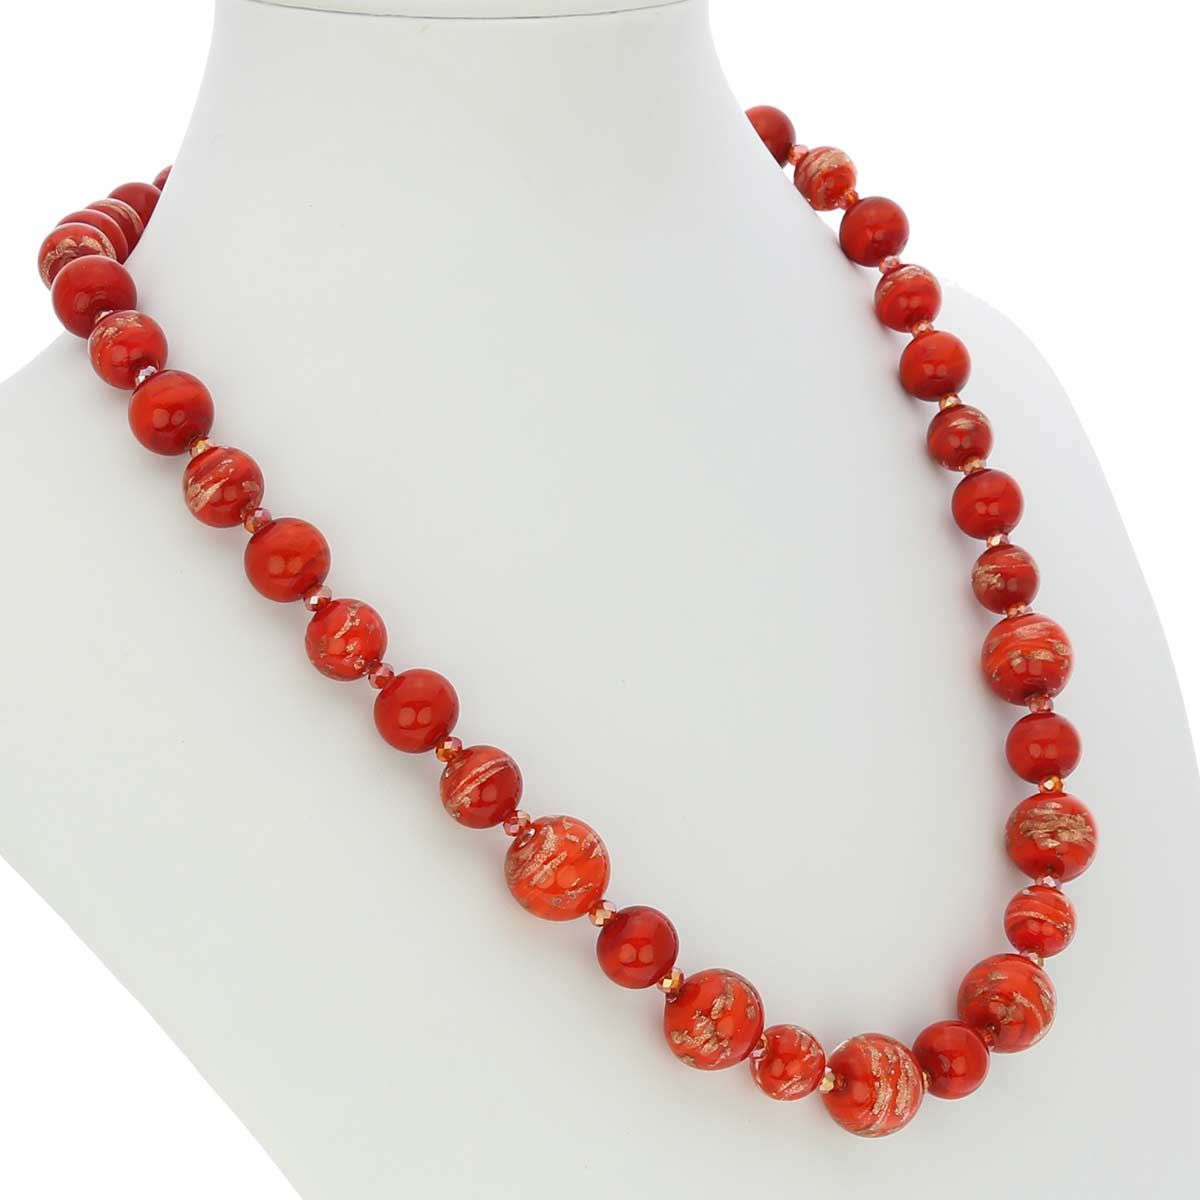 Starlight Murano Necklace - Fire Red